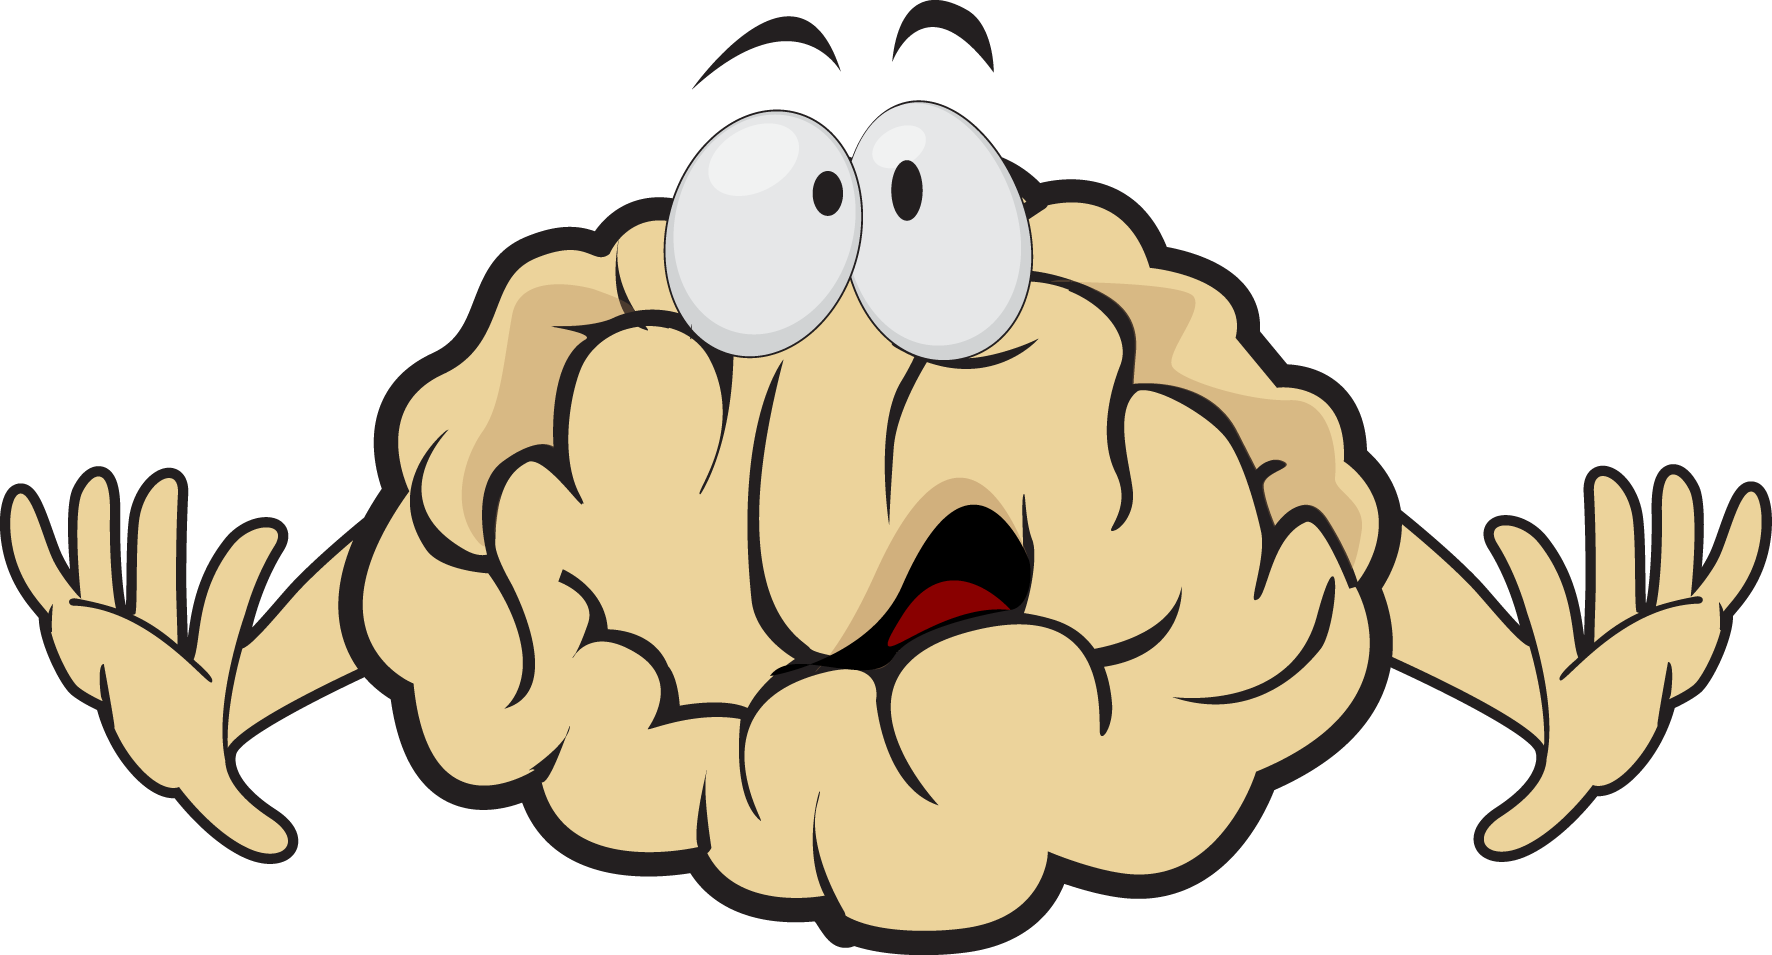 Stamp clipart monster. Scared brain wisc online